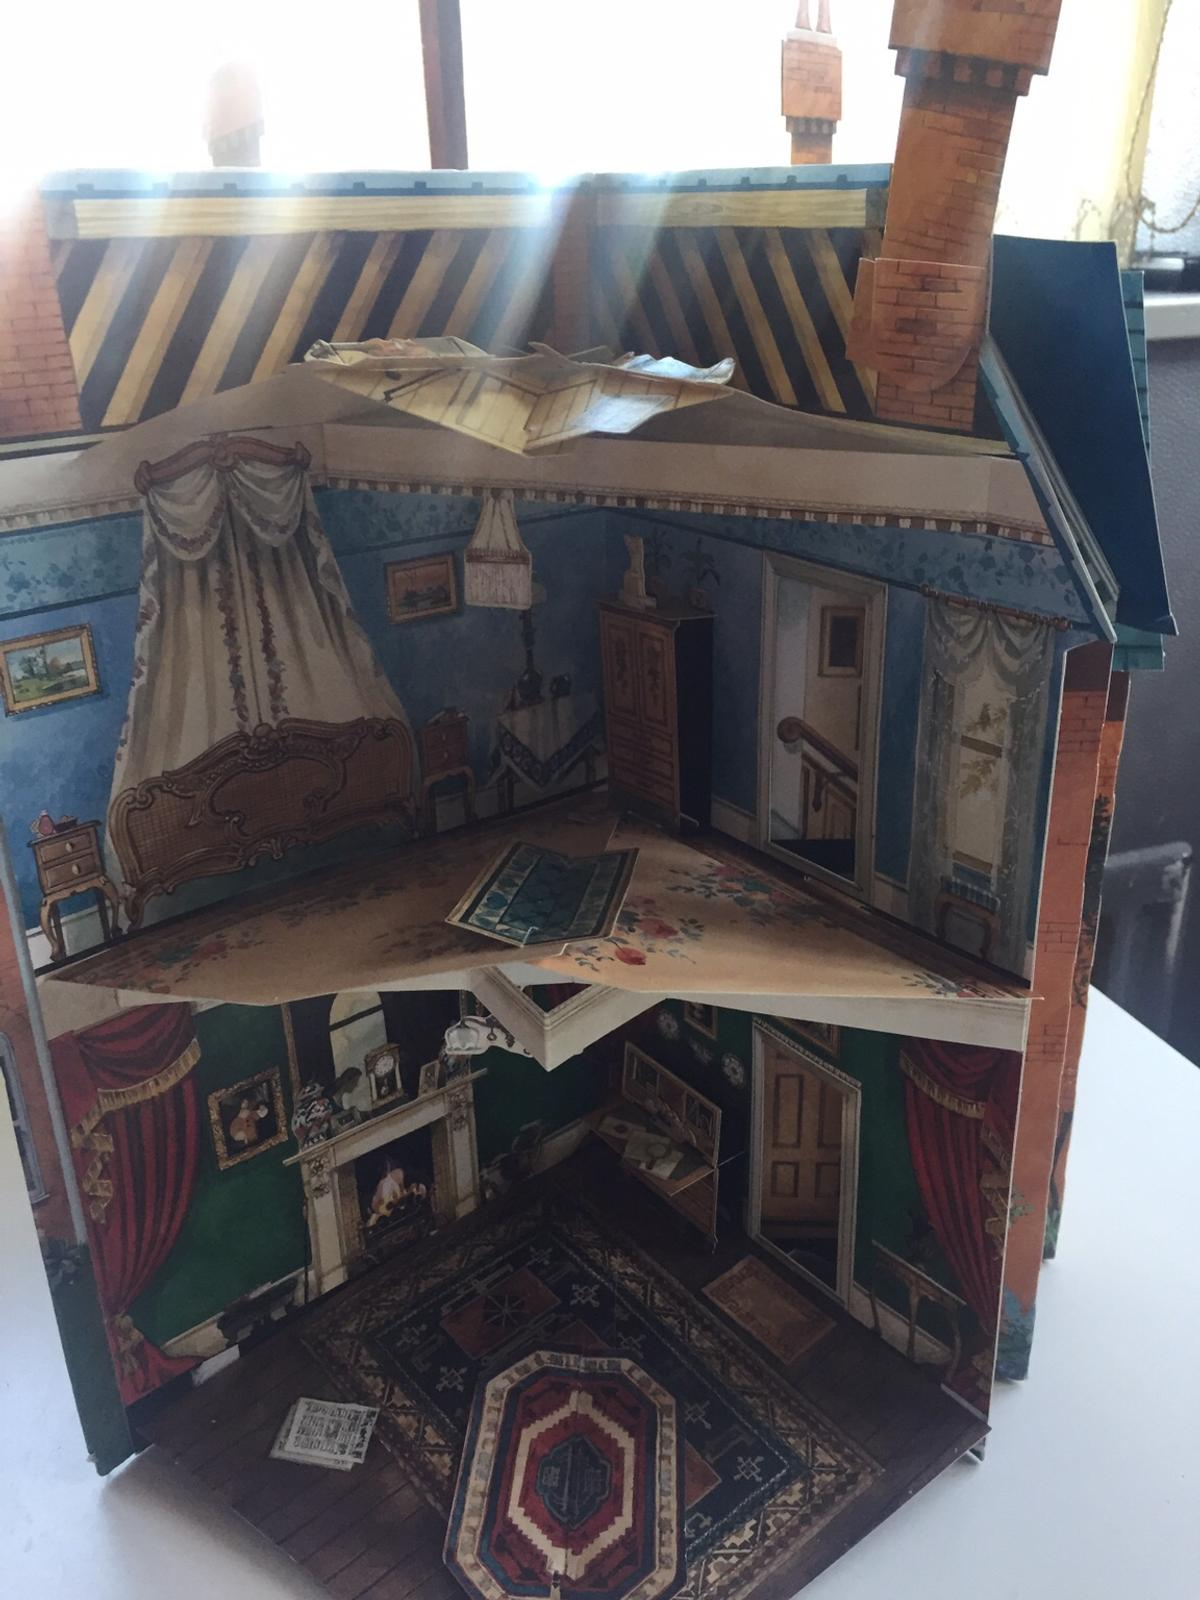 Brilliant Doll House Pop Up Book In Ls27 Leeds For 10 00 For Sale Download Free Architecture Designs Scobabritishbridgeorg